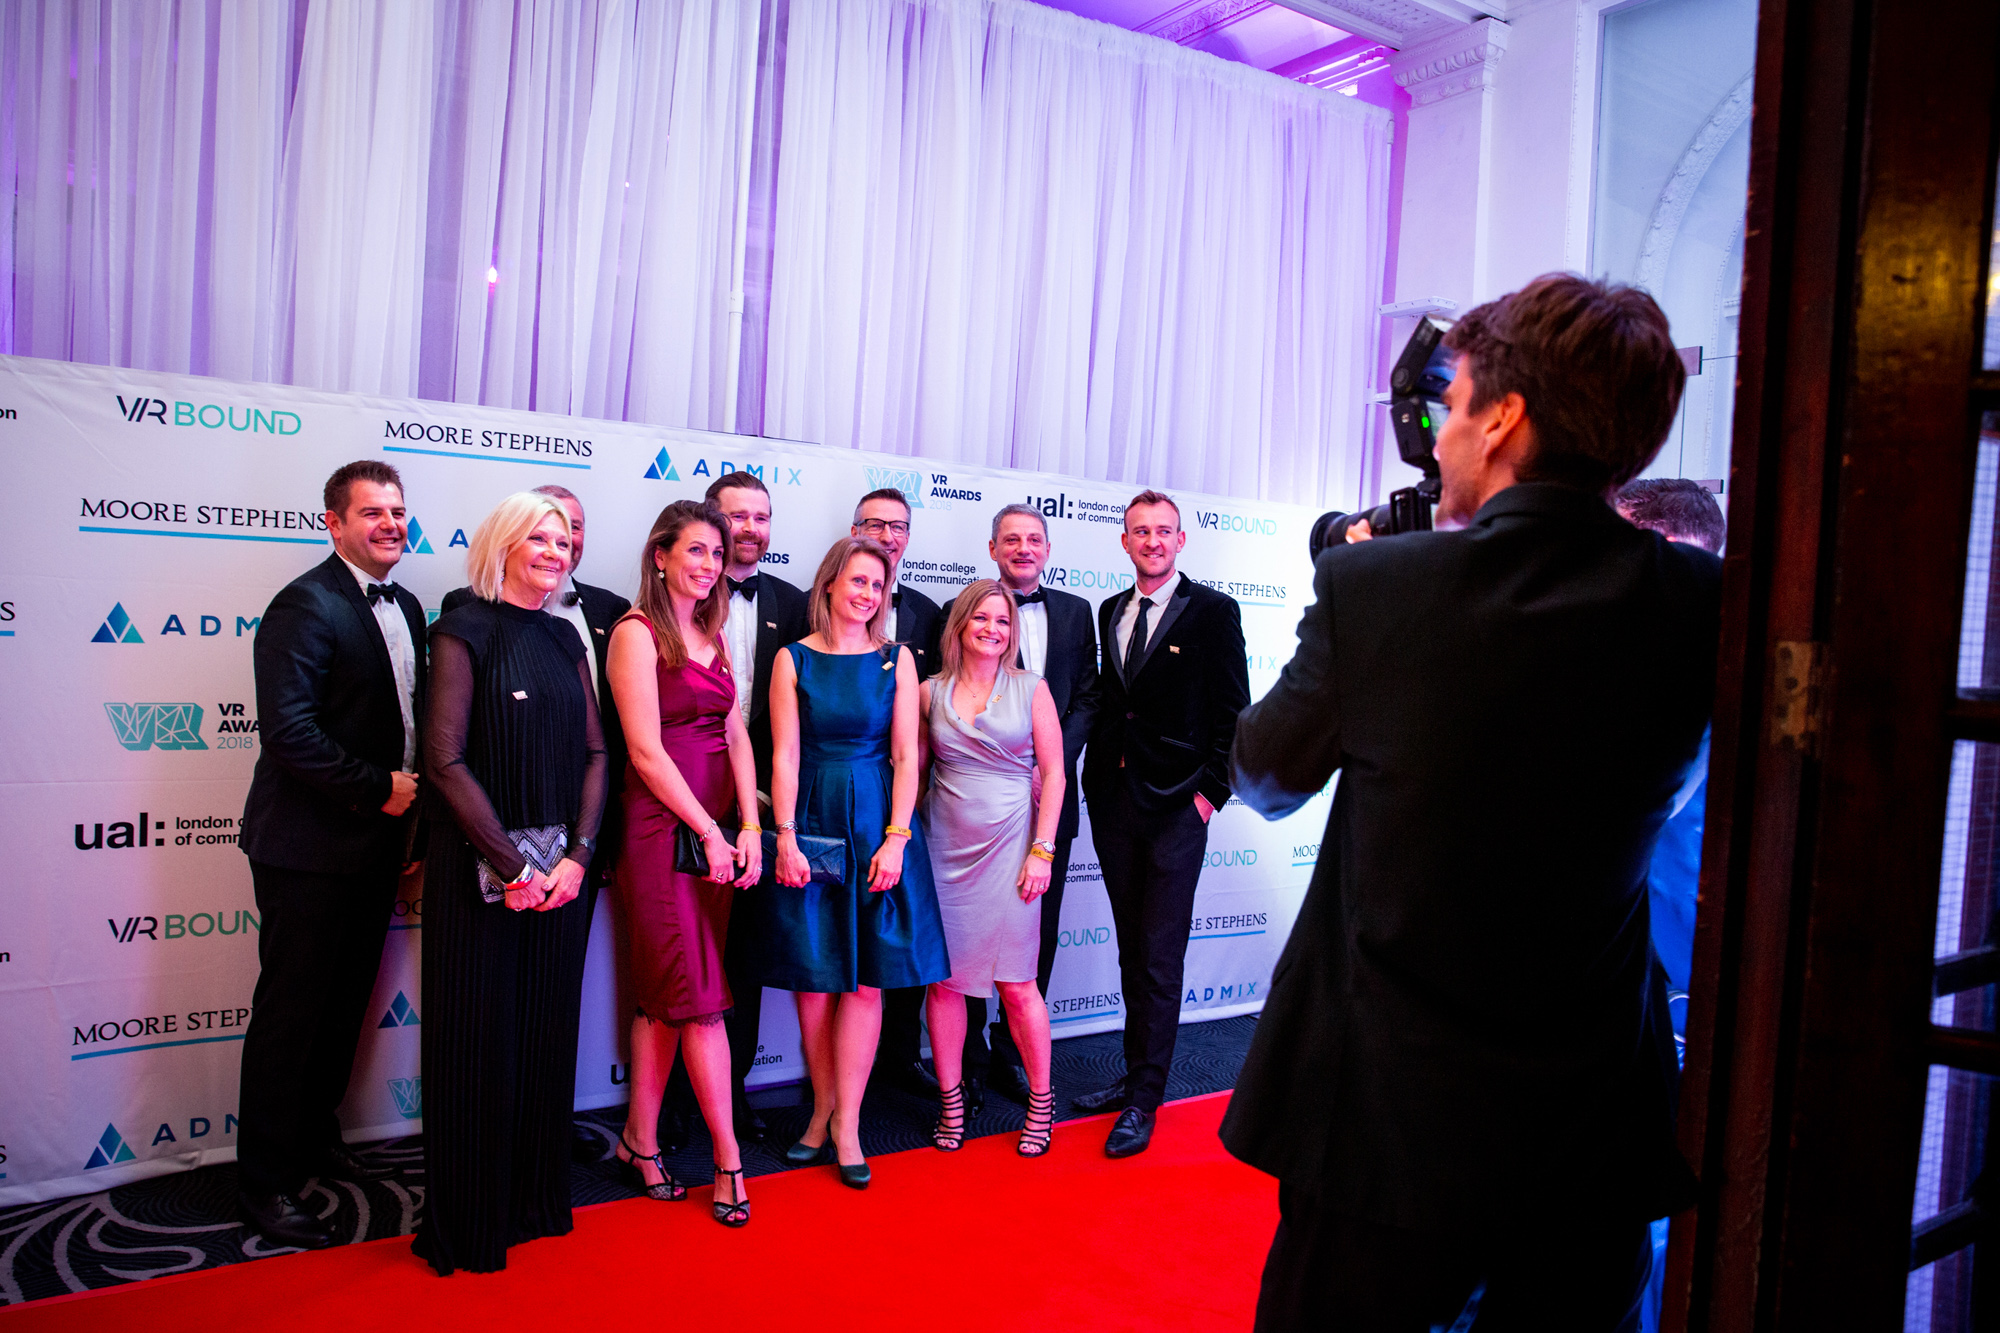 Raccoon_London_VR_Awards_2018_Event_Photography-14.jpg